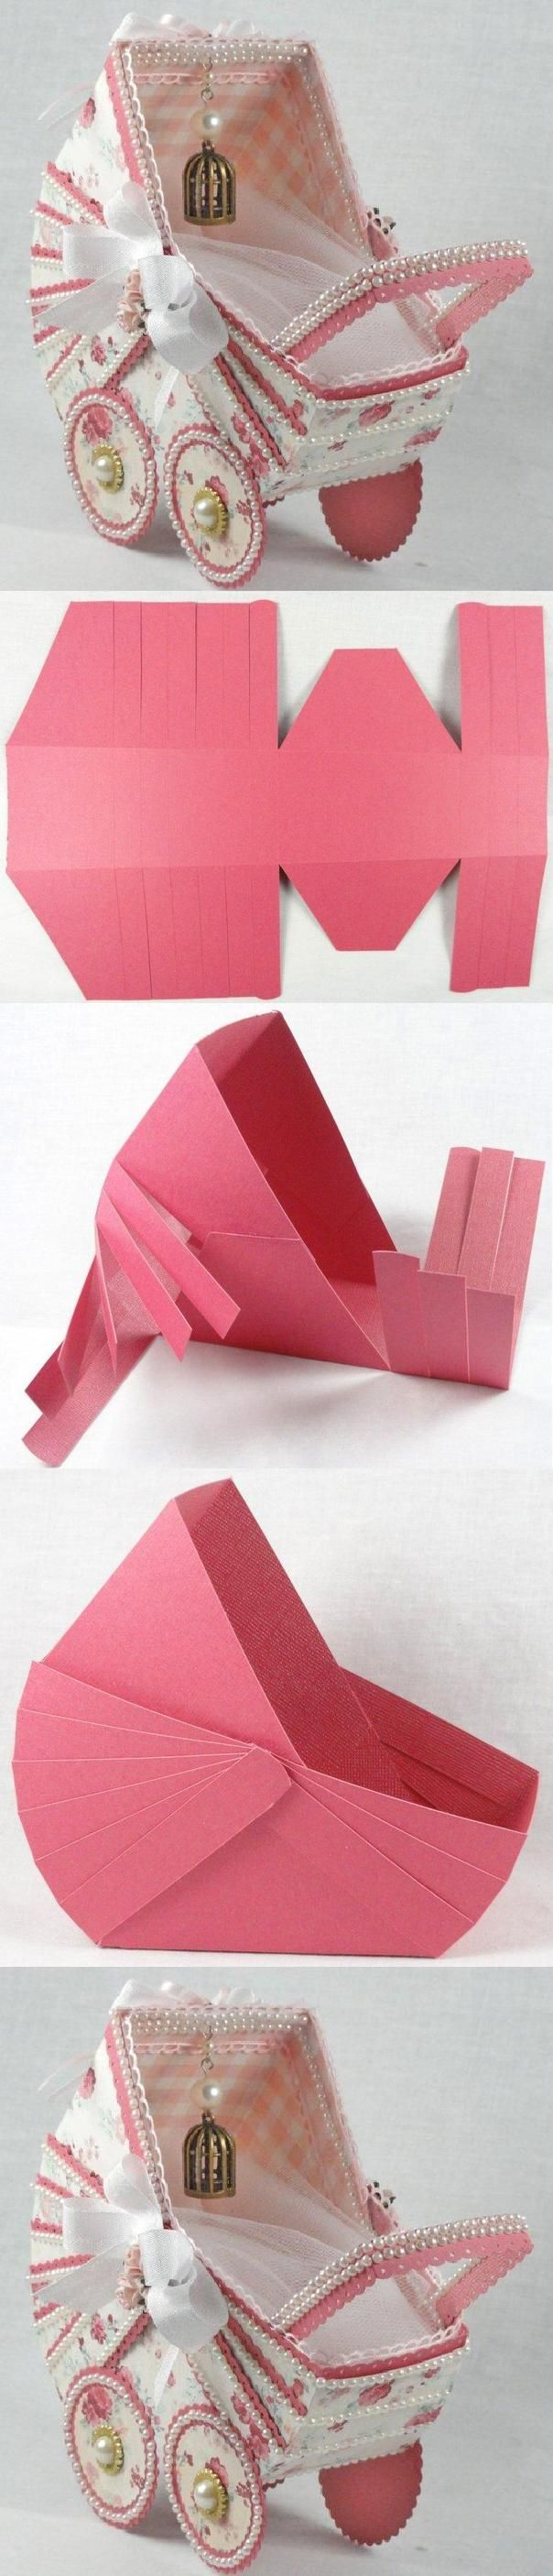 How To Make Origami Baby Stroller